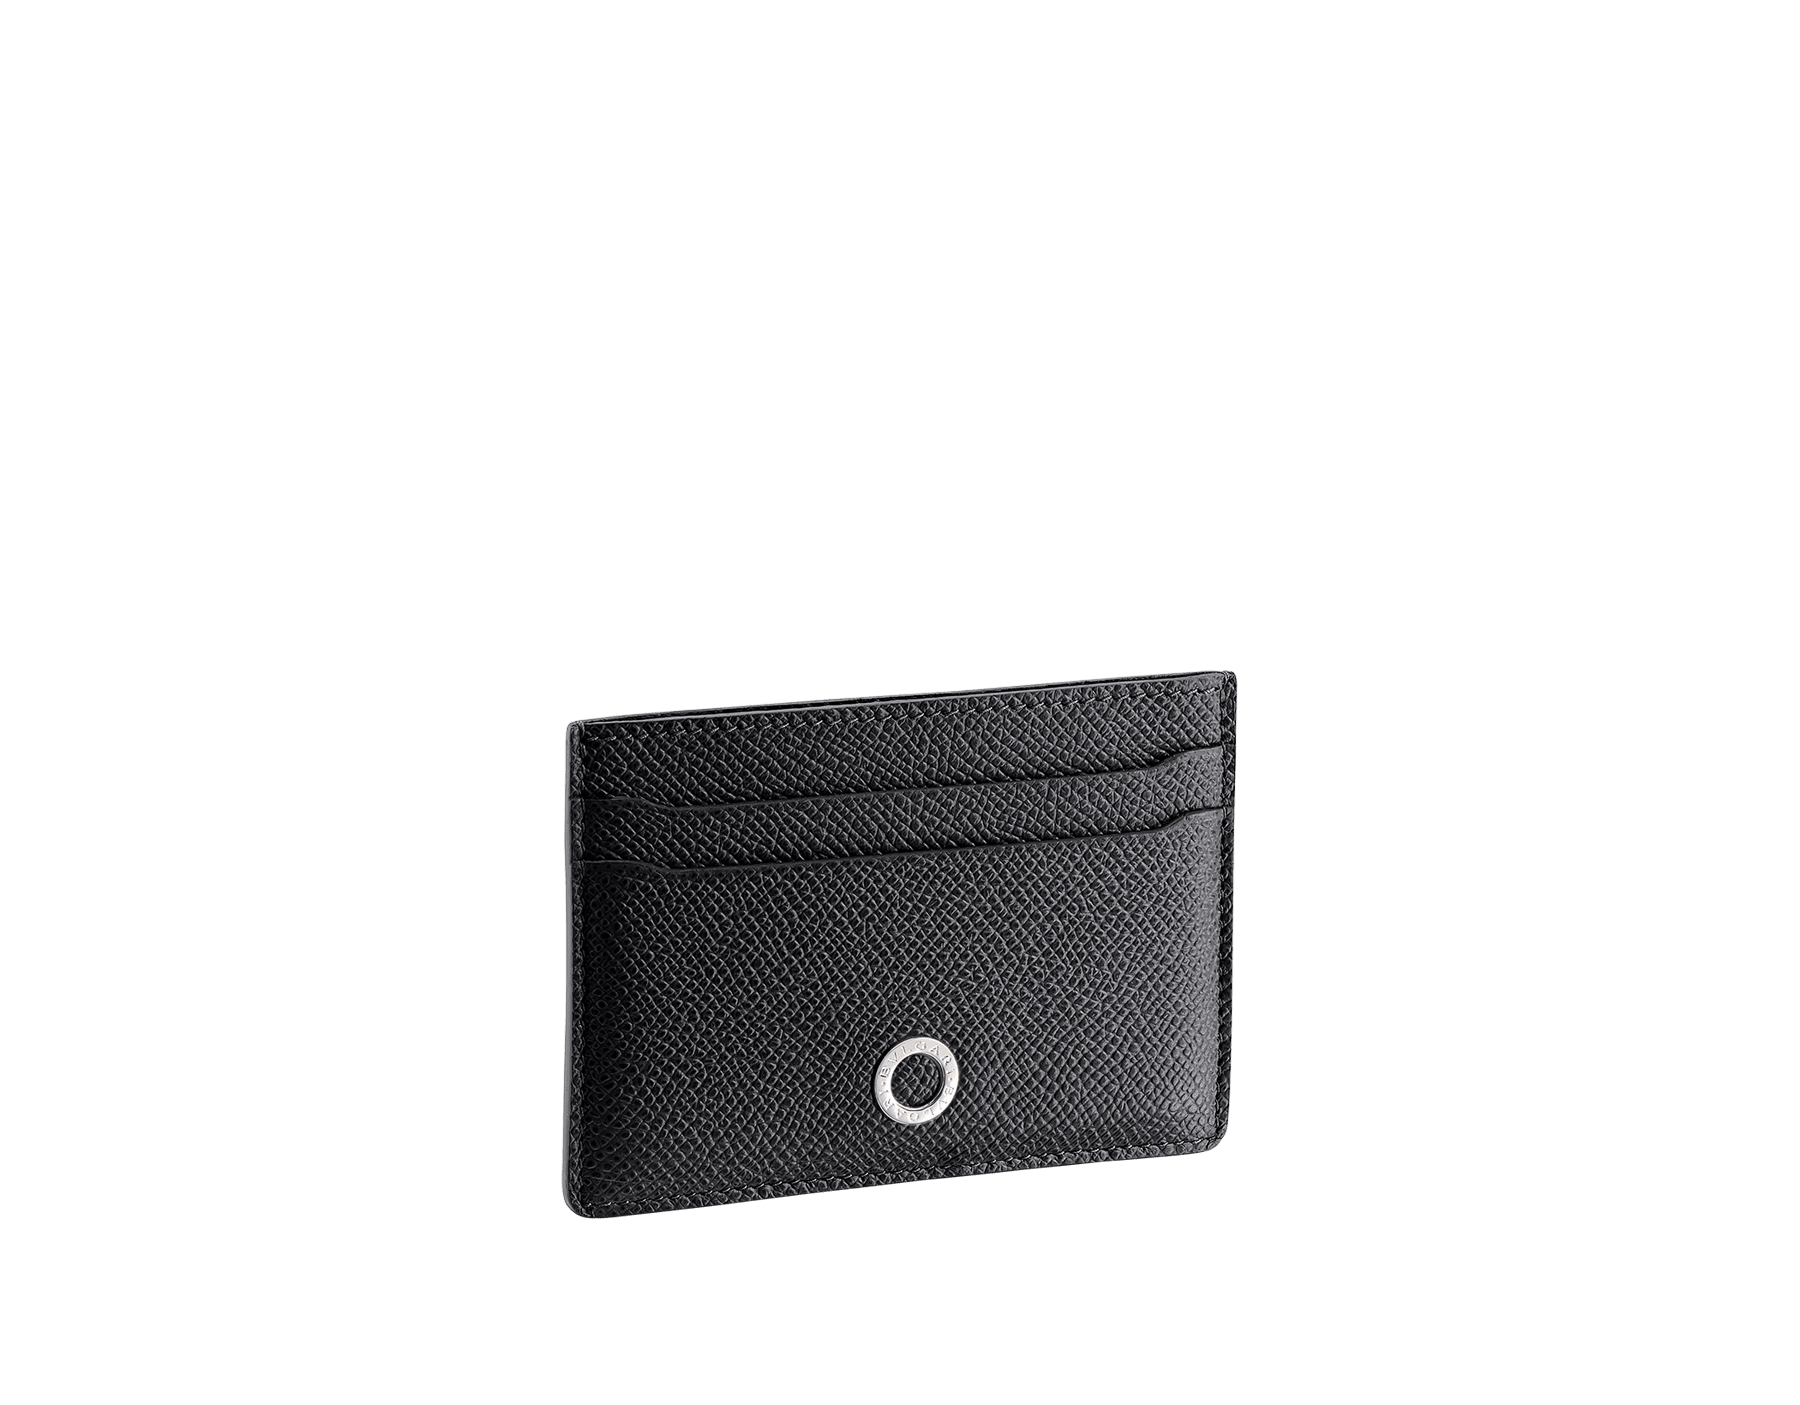 BVLGARI BVLGARI credit card holder in black and cobalt tourmaline grain calf leather and black nappa lining. Iconic logo décor in palladium plated brass. 288600 image 1